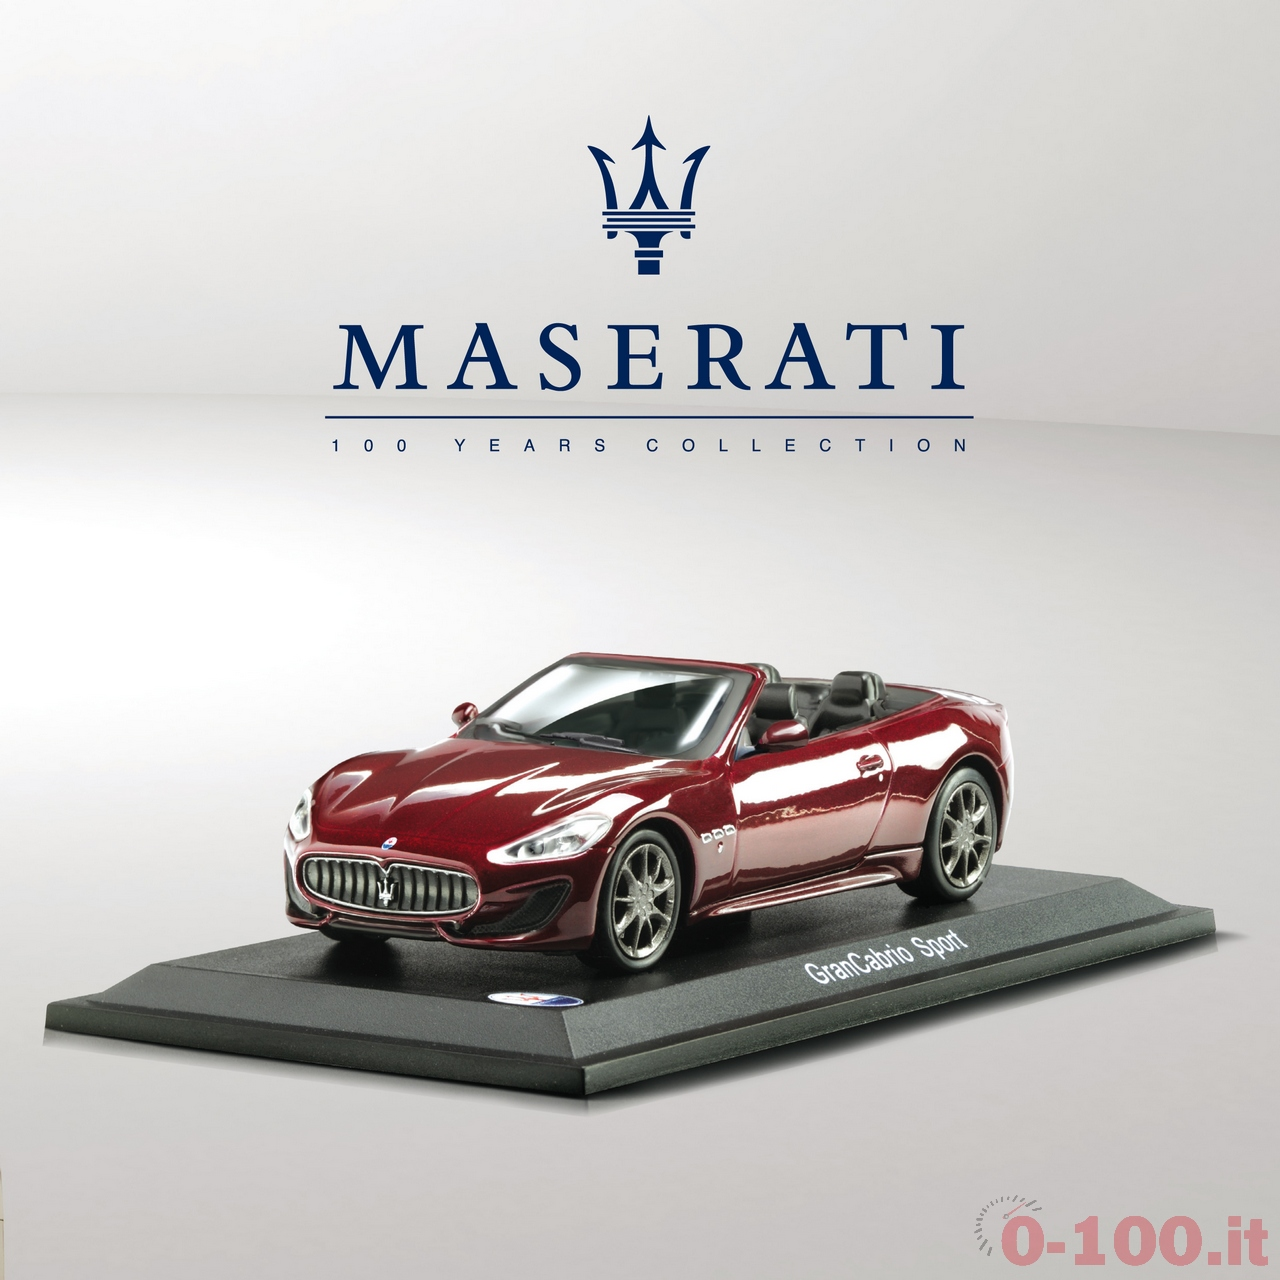 Maserati-100-Years-Collection-collateral_Gazzetta_prezzo_price0-100_3